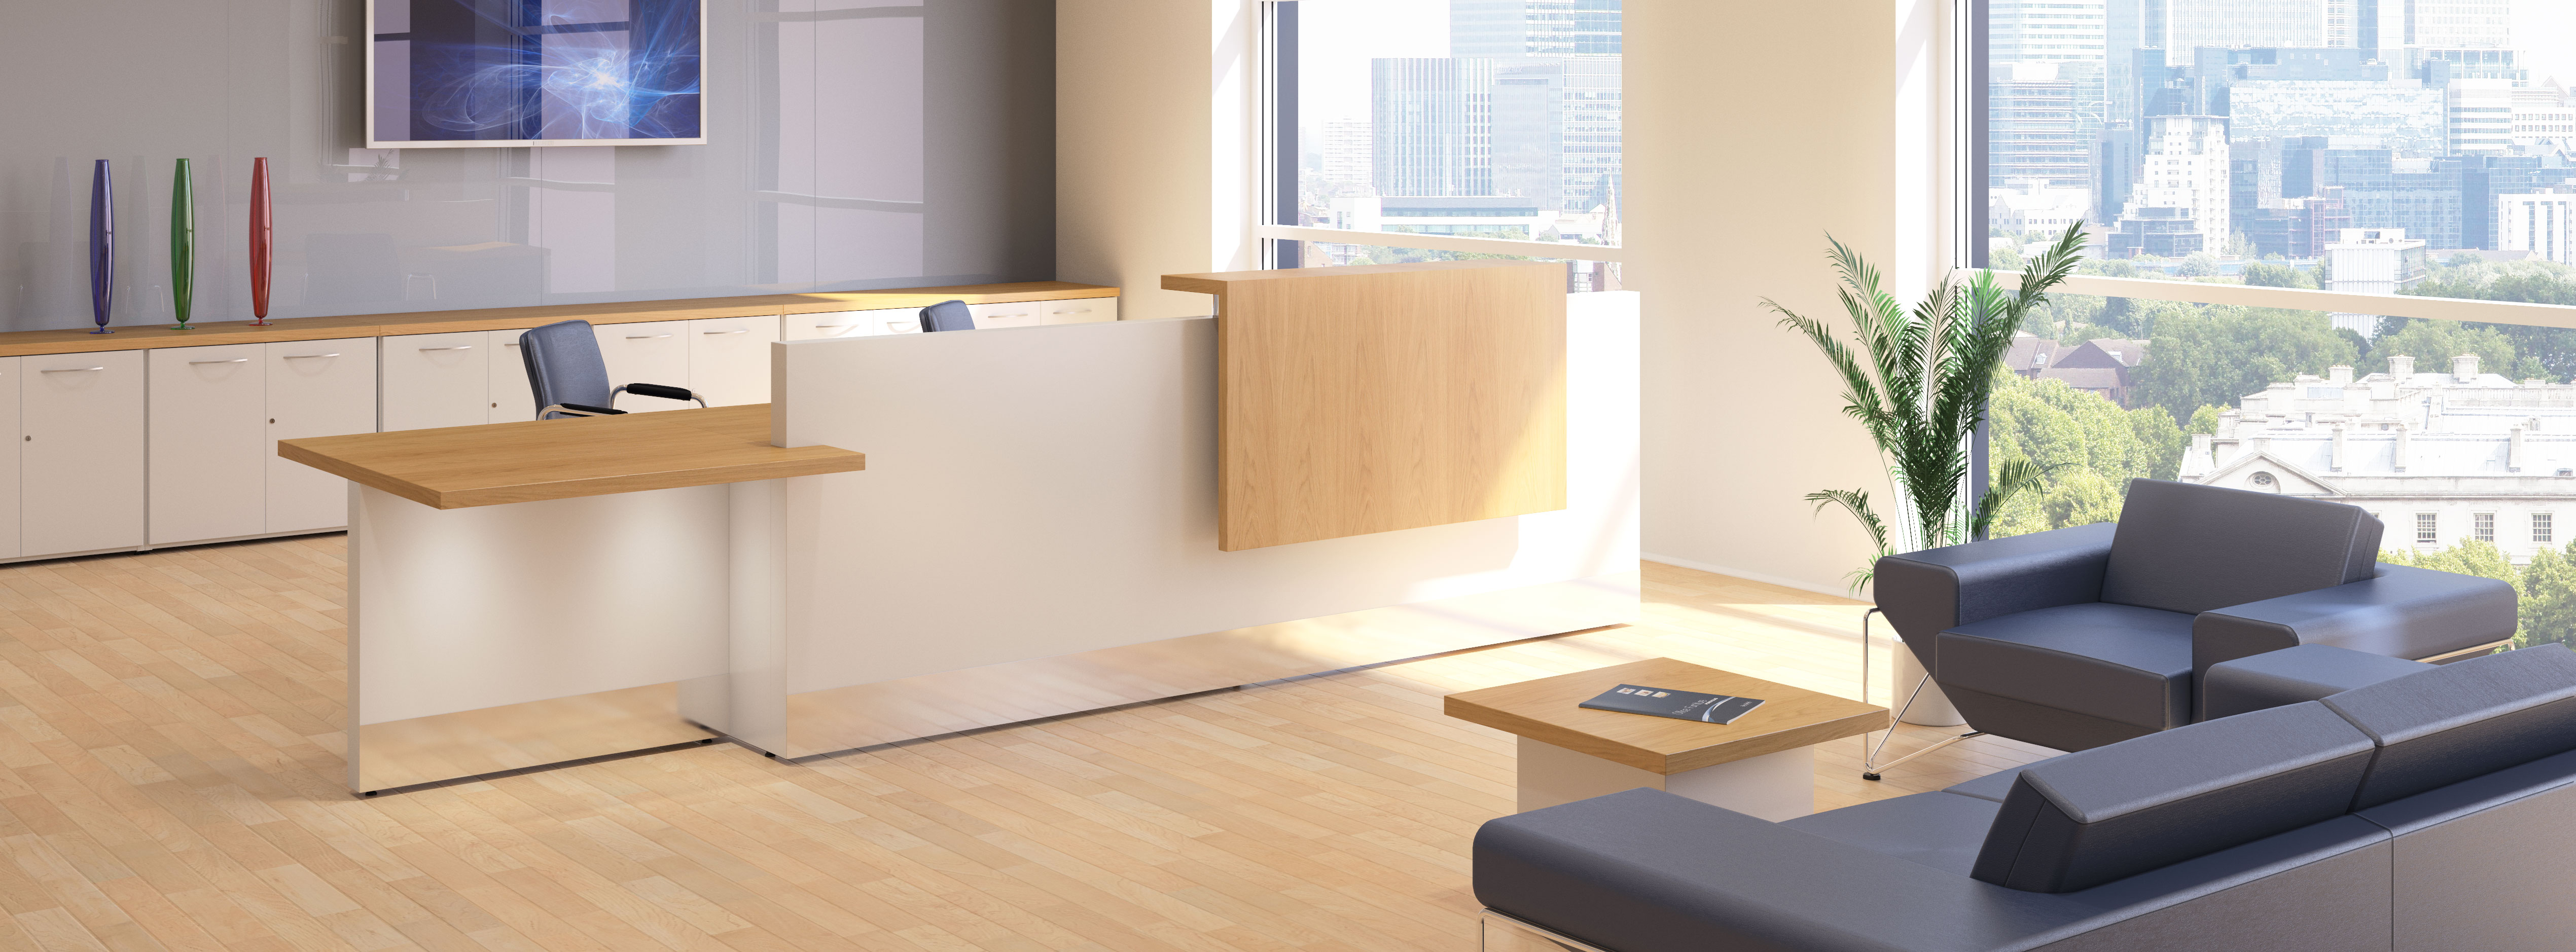 Fulcrum Pro - Reception Desk